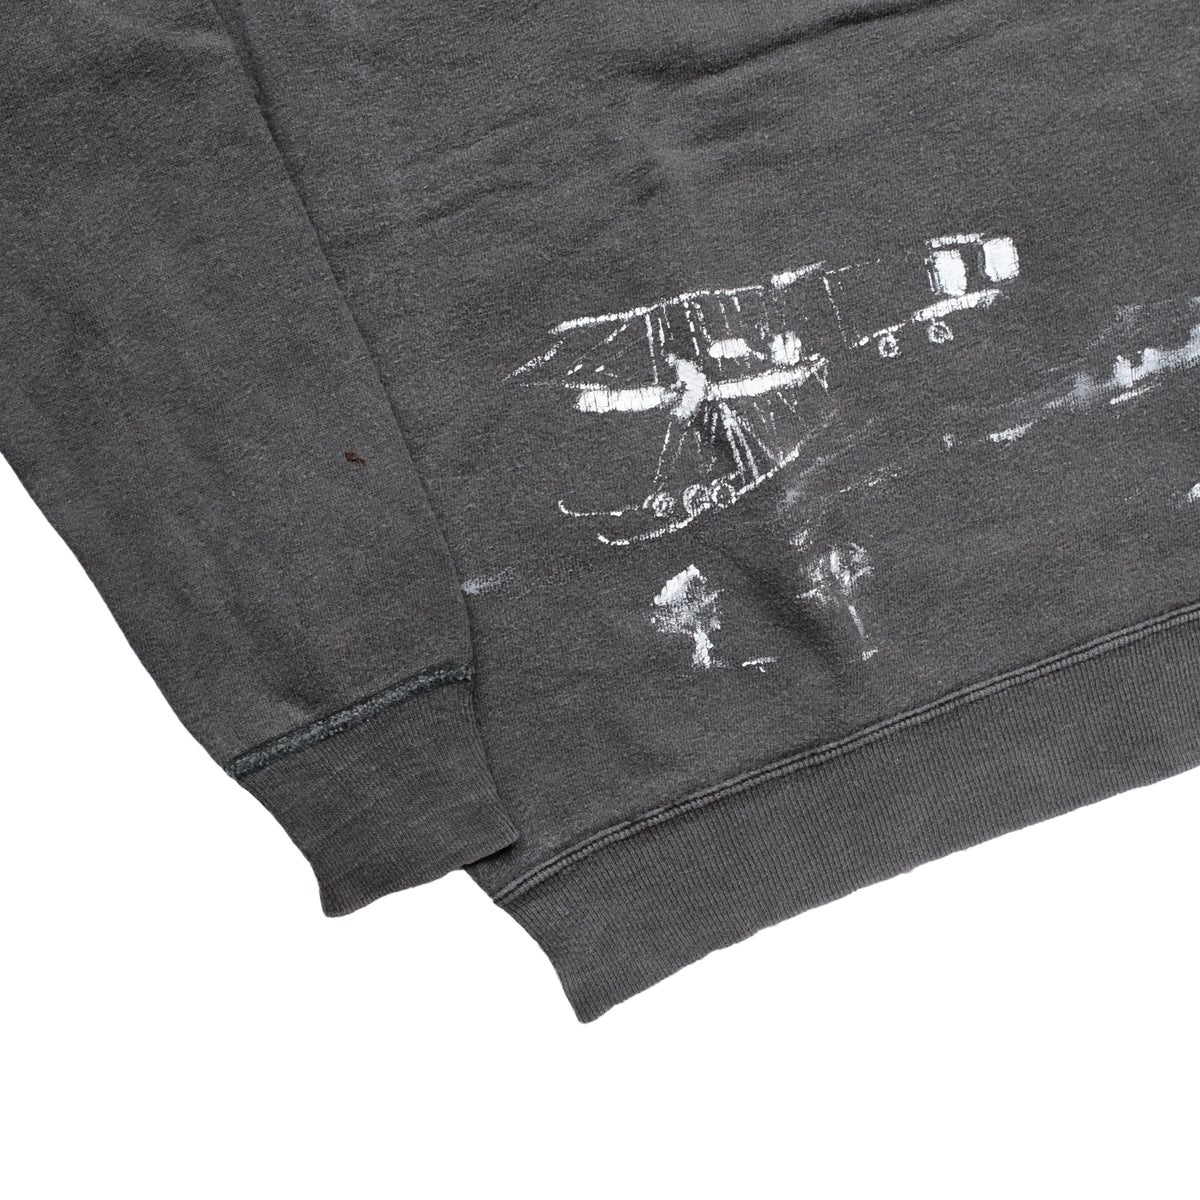 Image of Vintage 1960's Faded Black Sweatshirt with Paint/Images